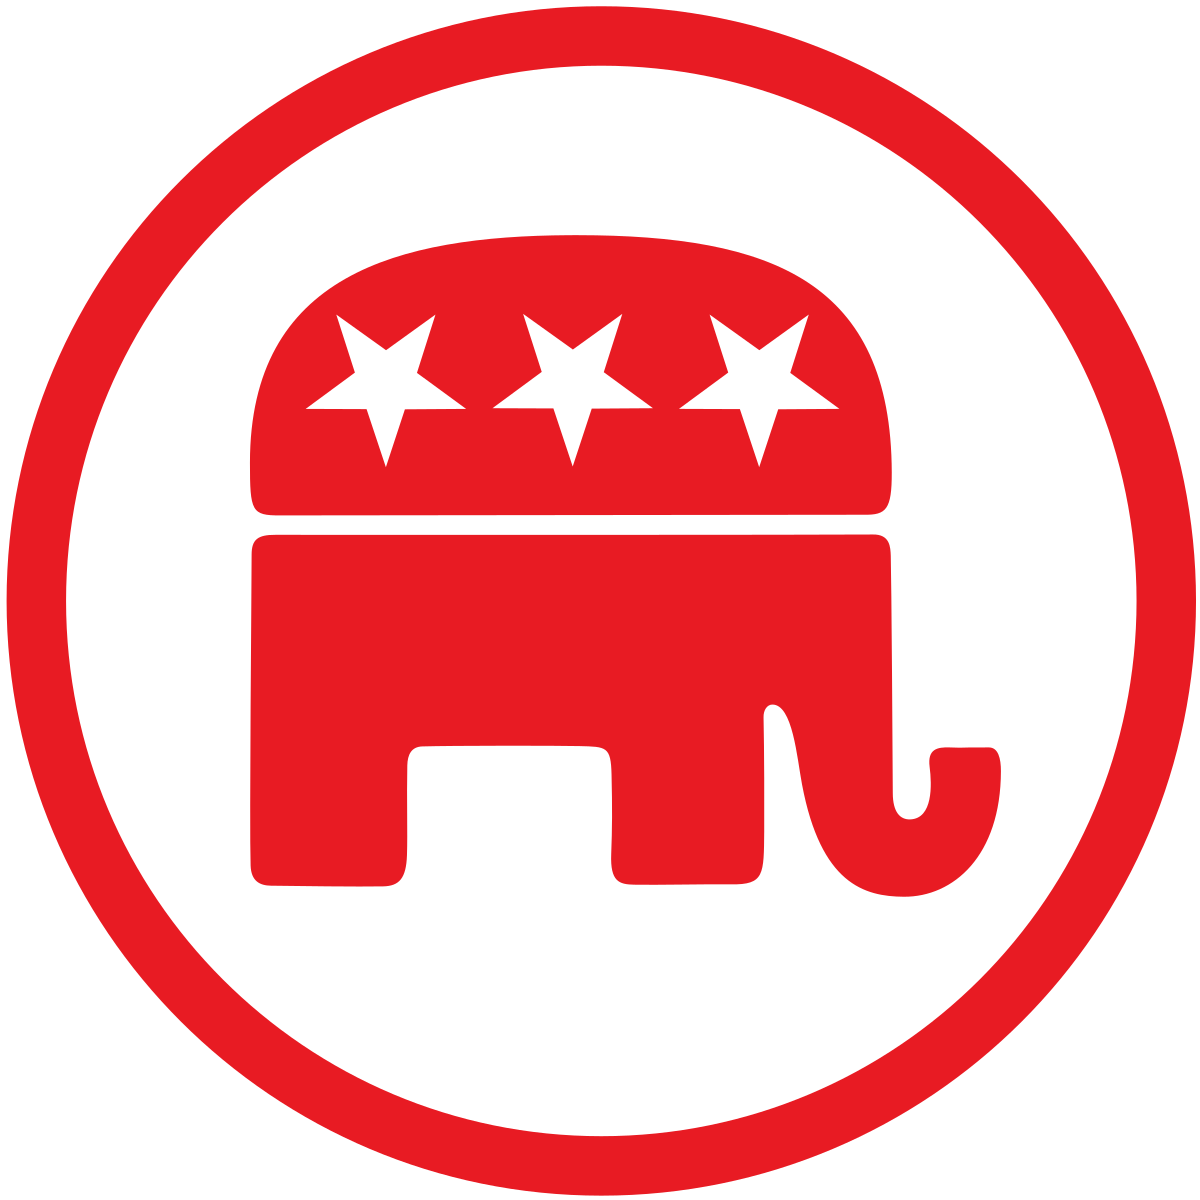 Gop elephant png. Republican party united states